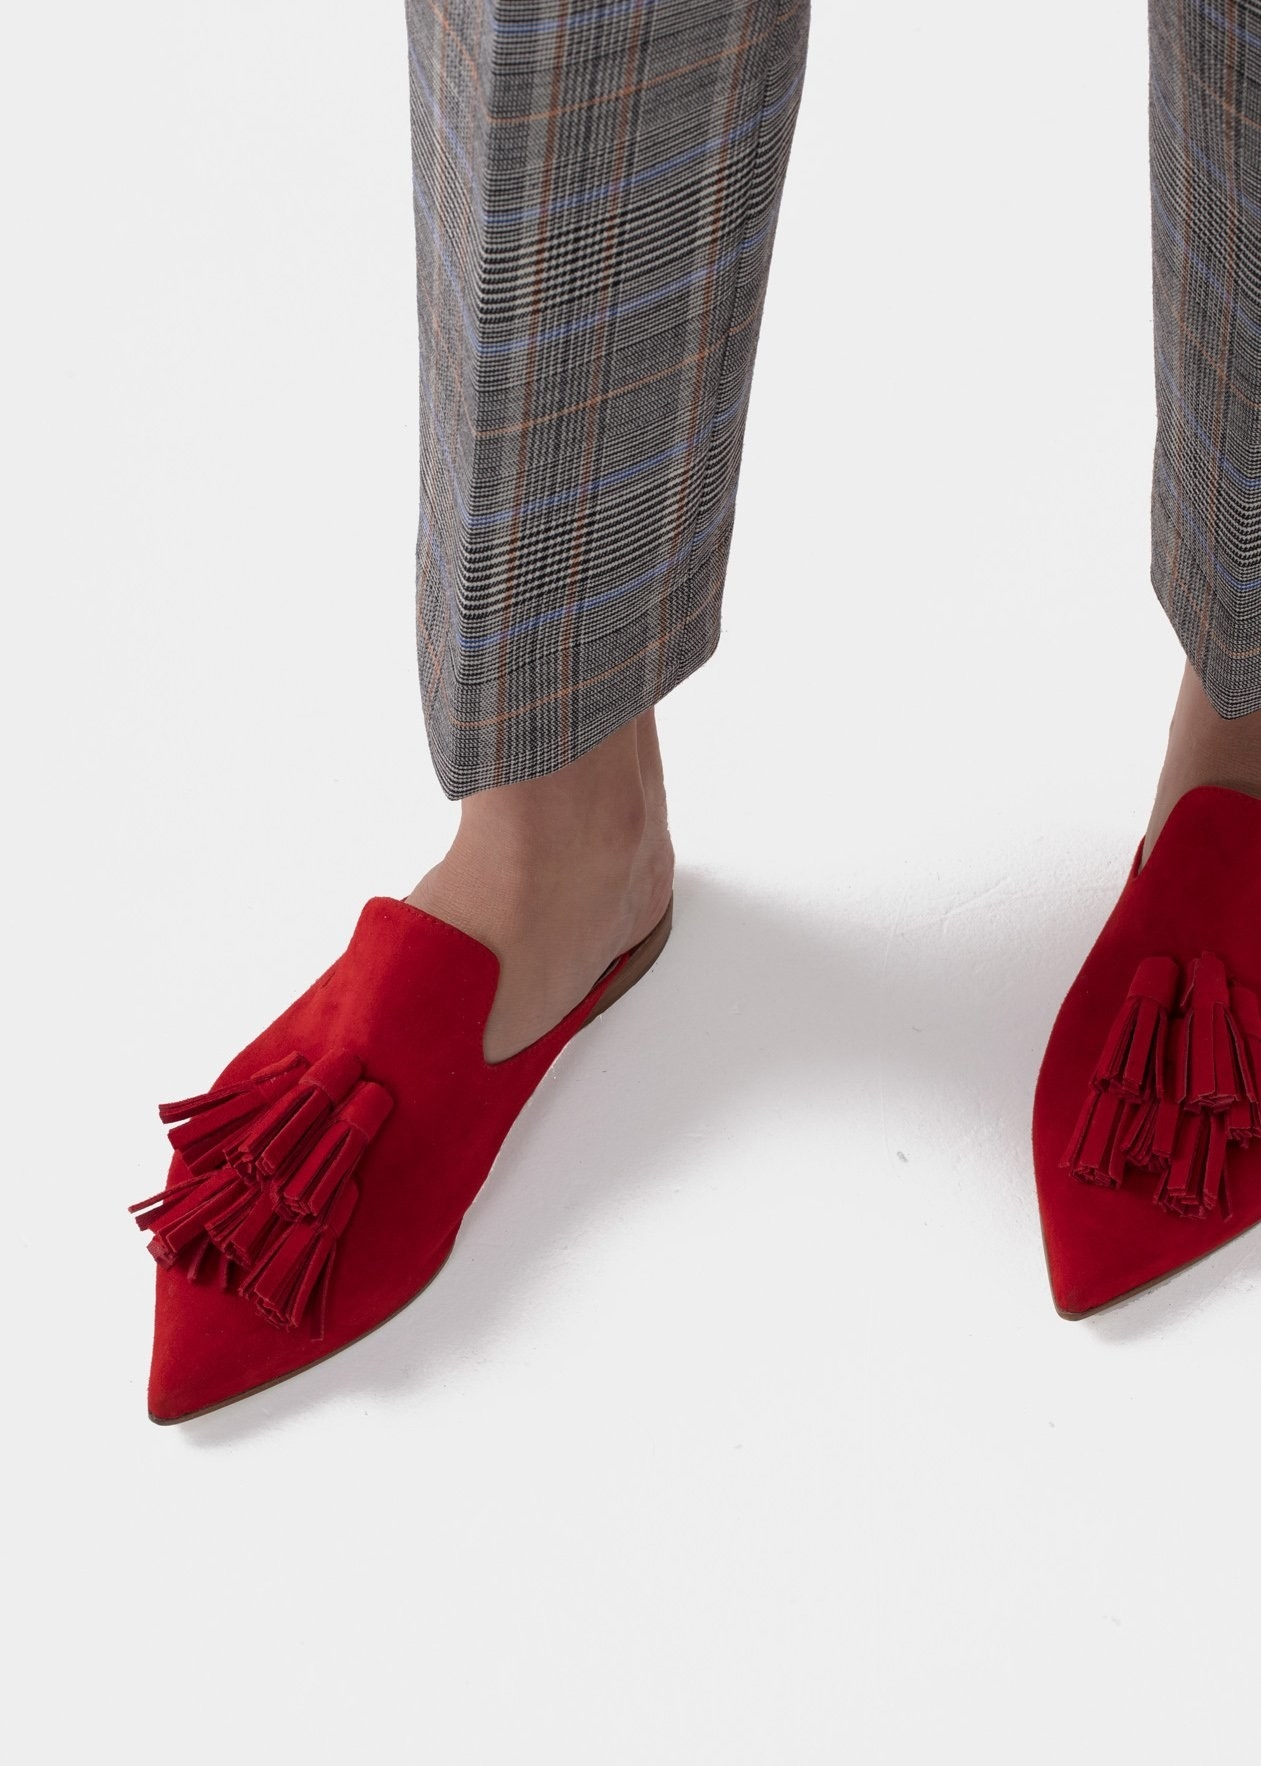 The pointed toe red slip-on loafers with a collection of tassels on the top center